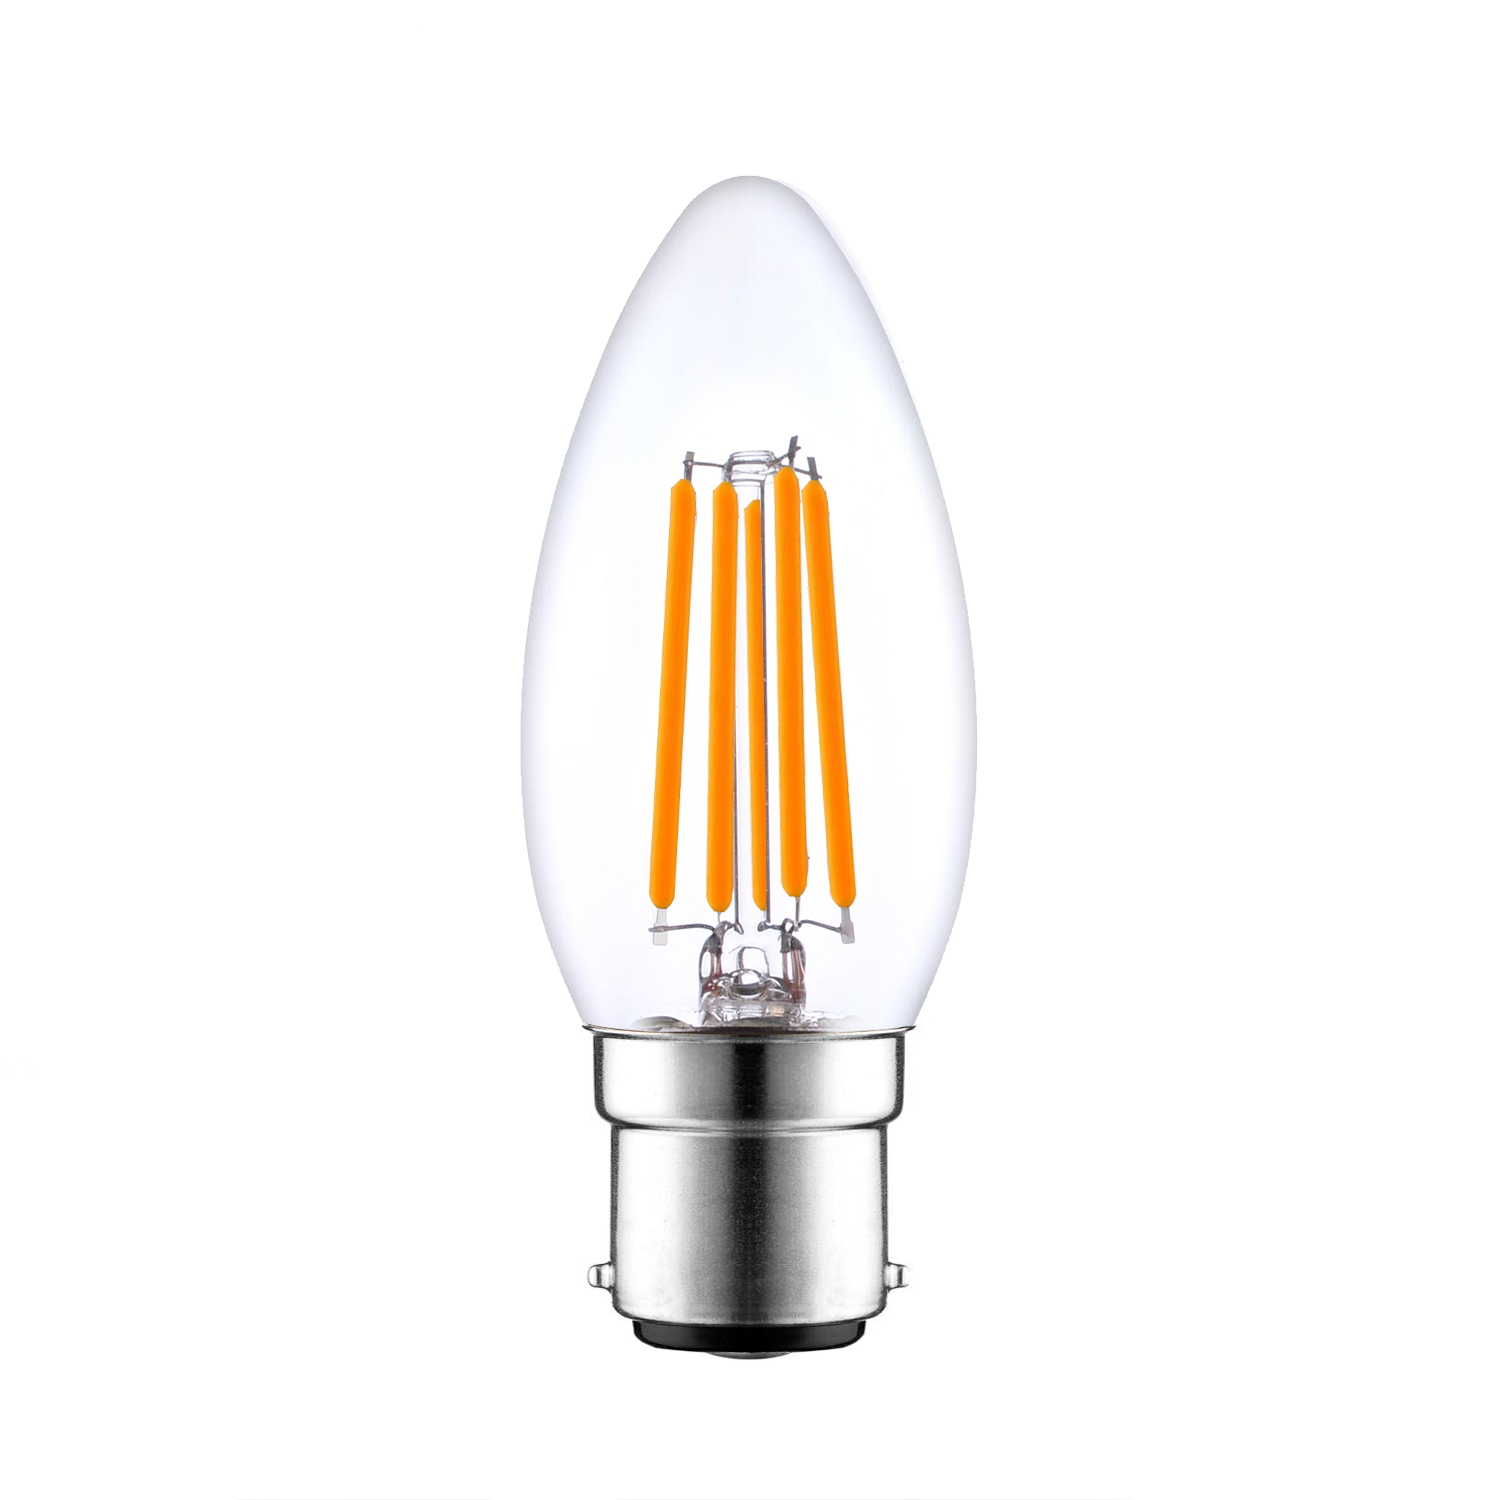 B22 LED Filmanet candle light bulbs